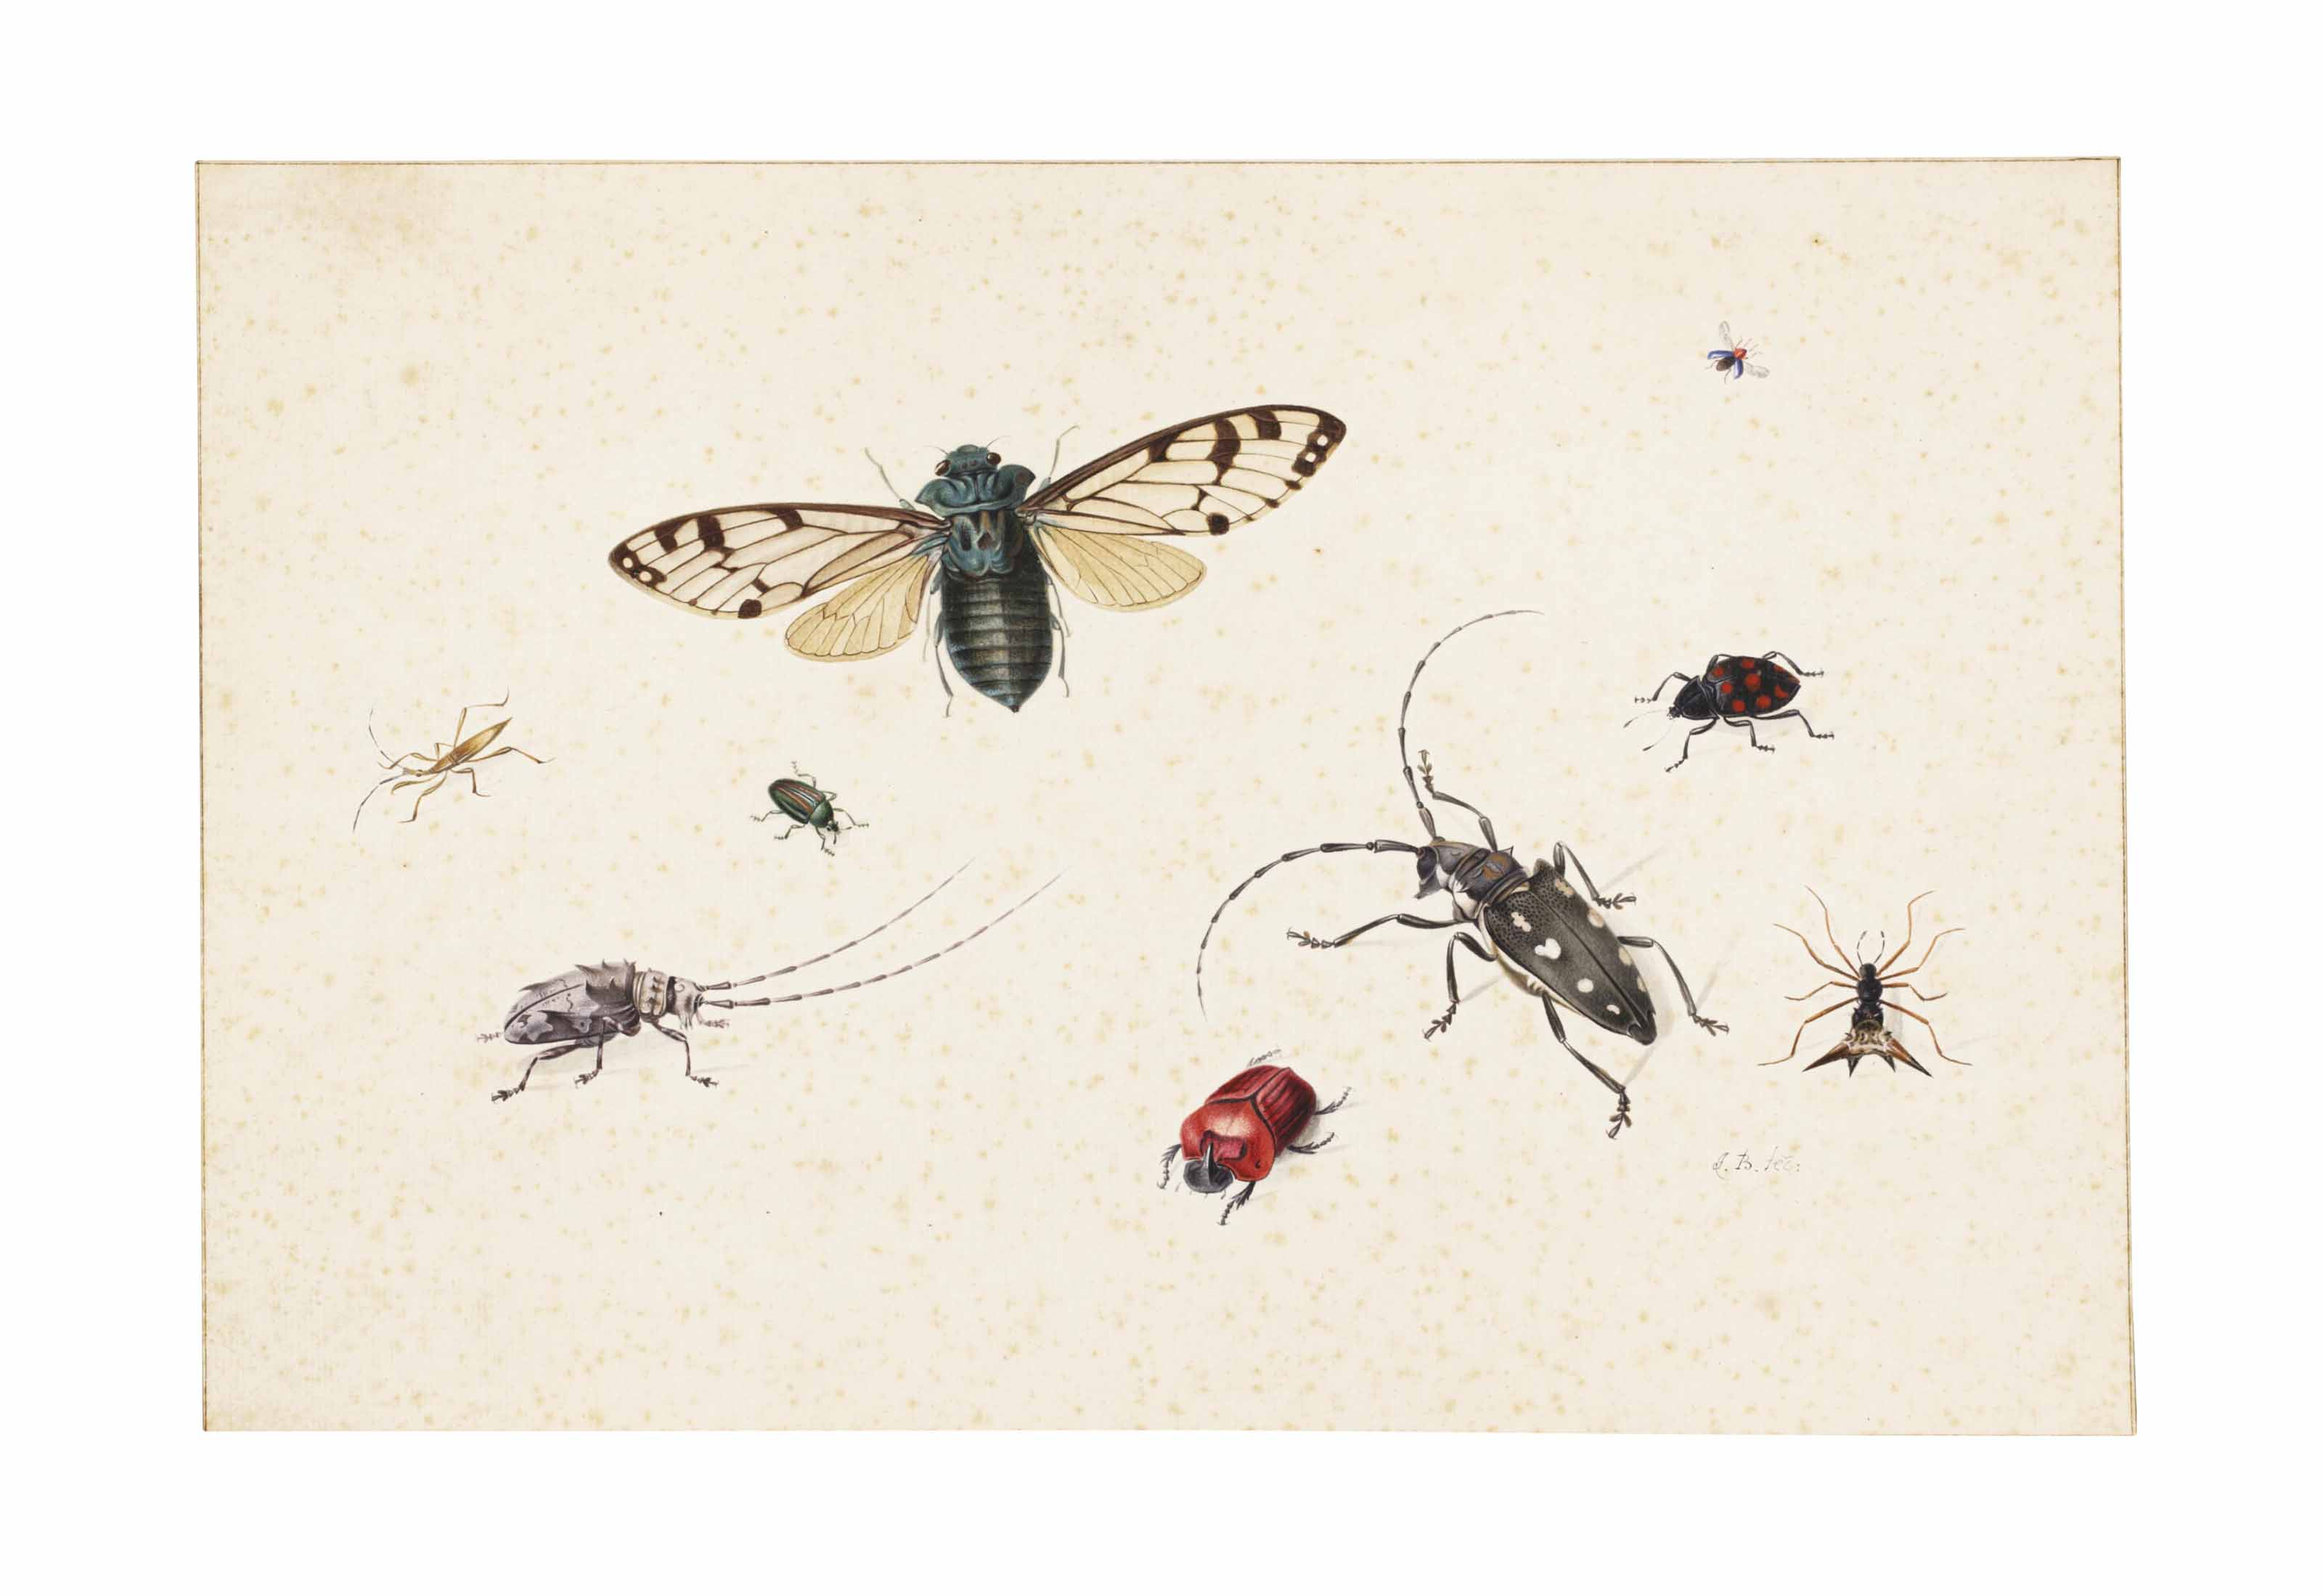 Studies of insects